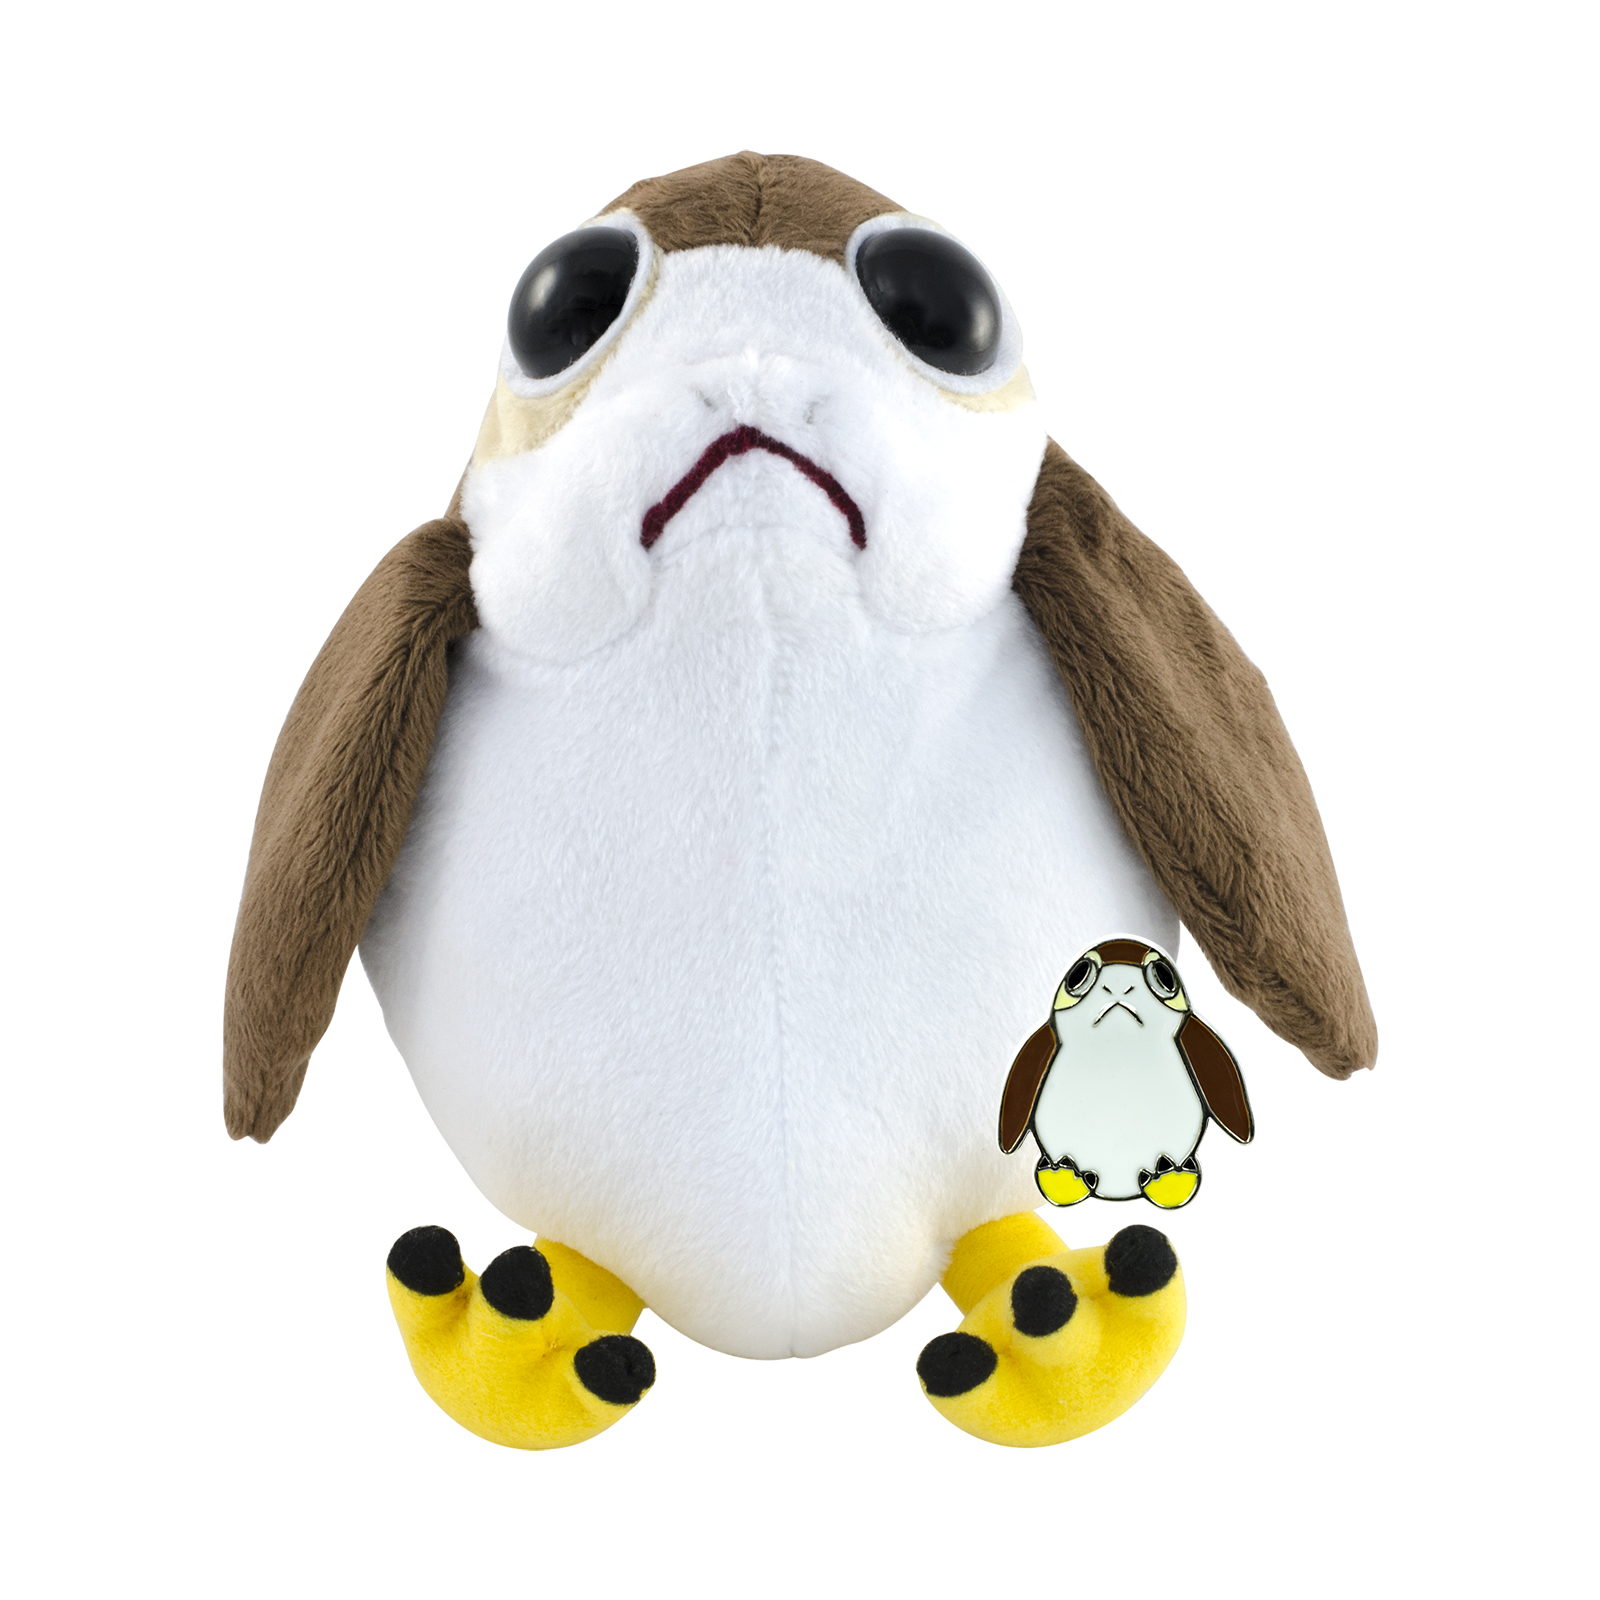 TROS Porg Plush Toy & Pin Set 2